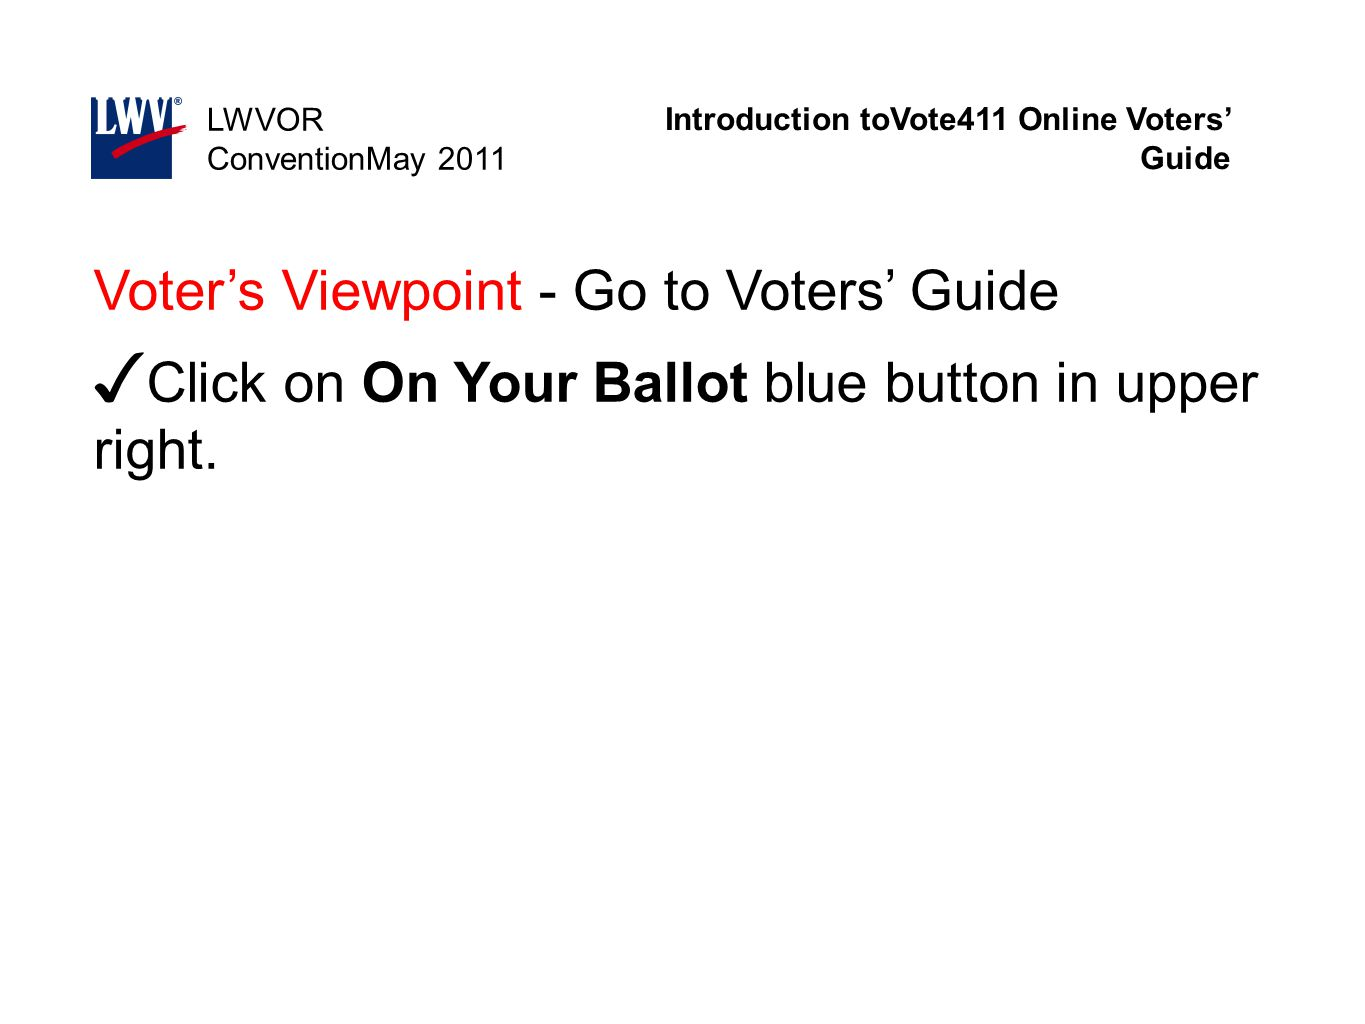 Introduction toVote411 Online Voters' Guide LWVOR ConventionMay 2011 Voter's Viewpoint - Go to Voters' Guide ✓ Click on On Your Ballot blue button in